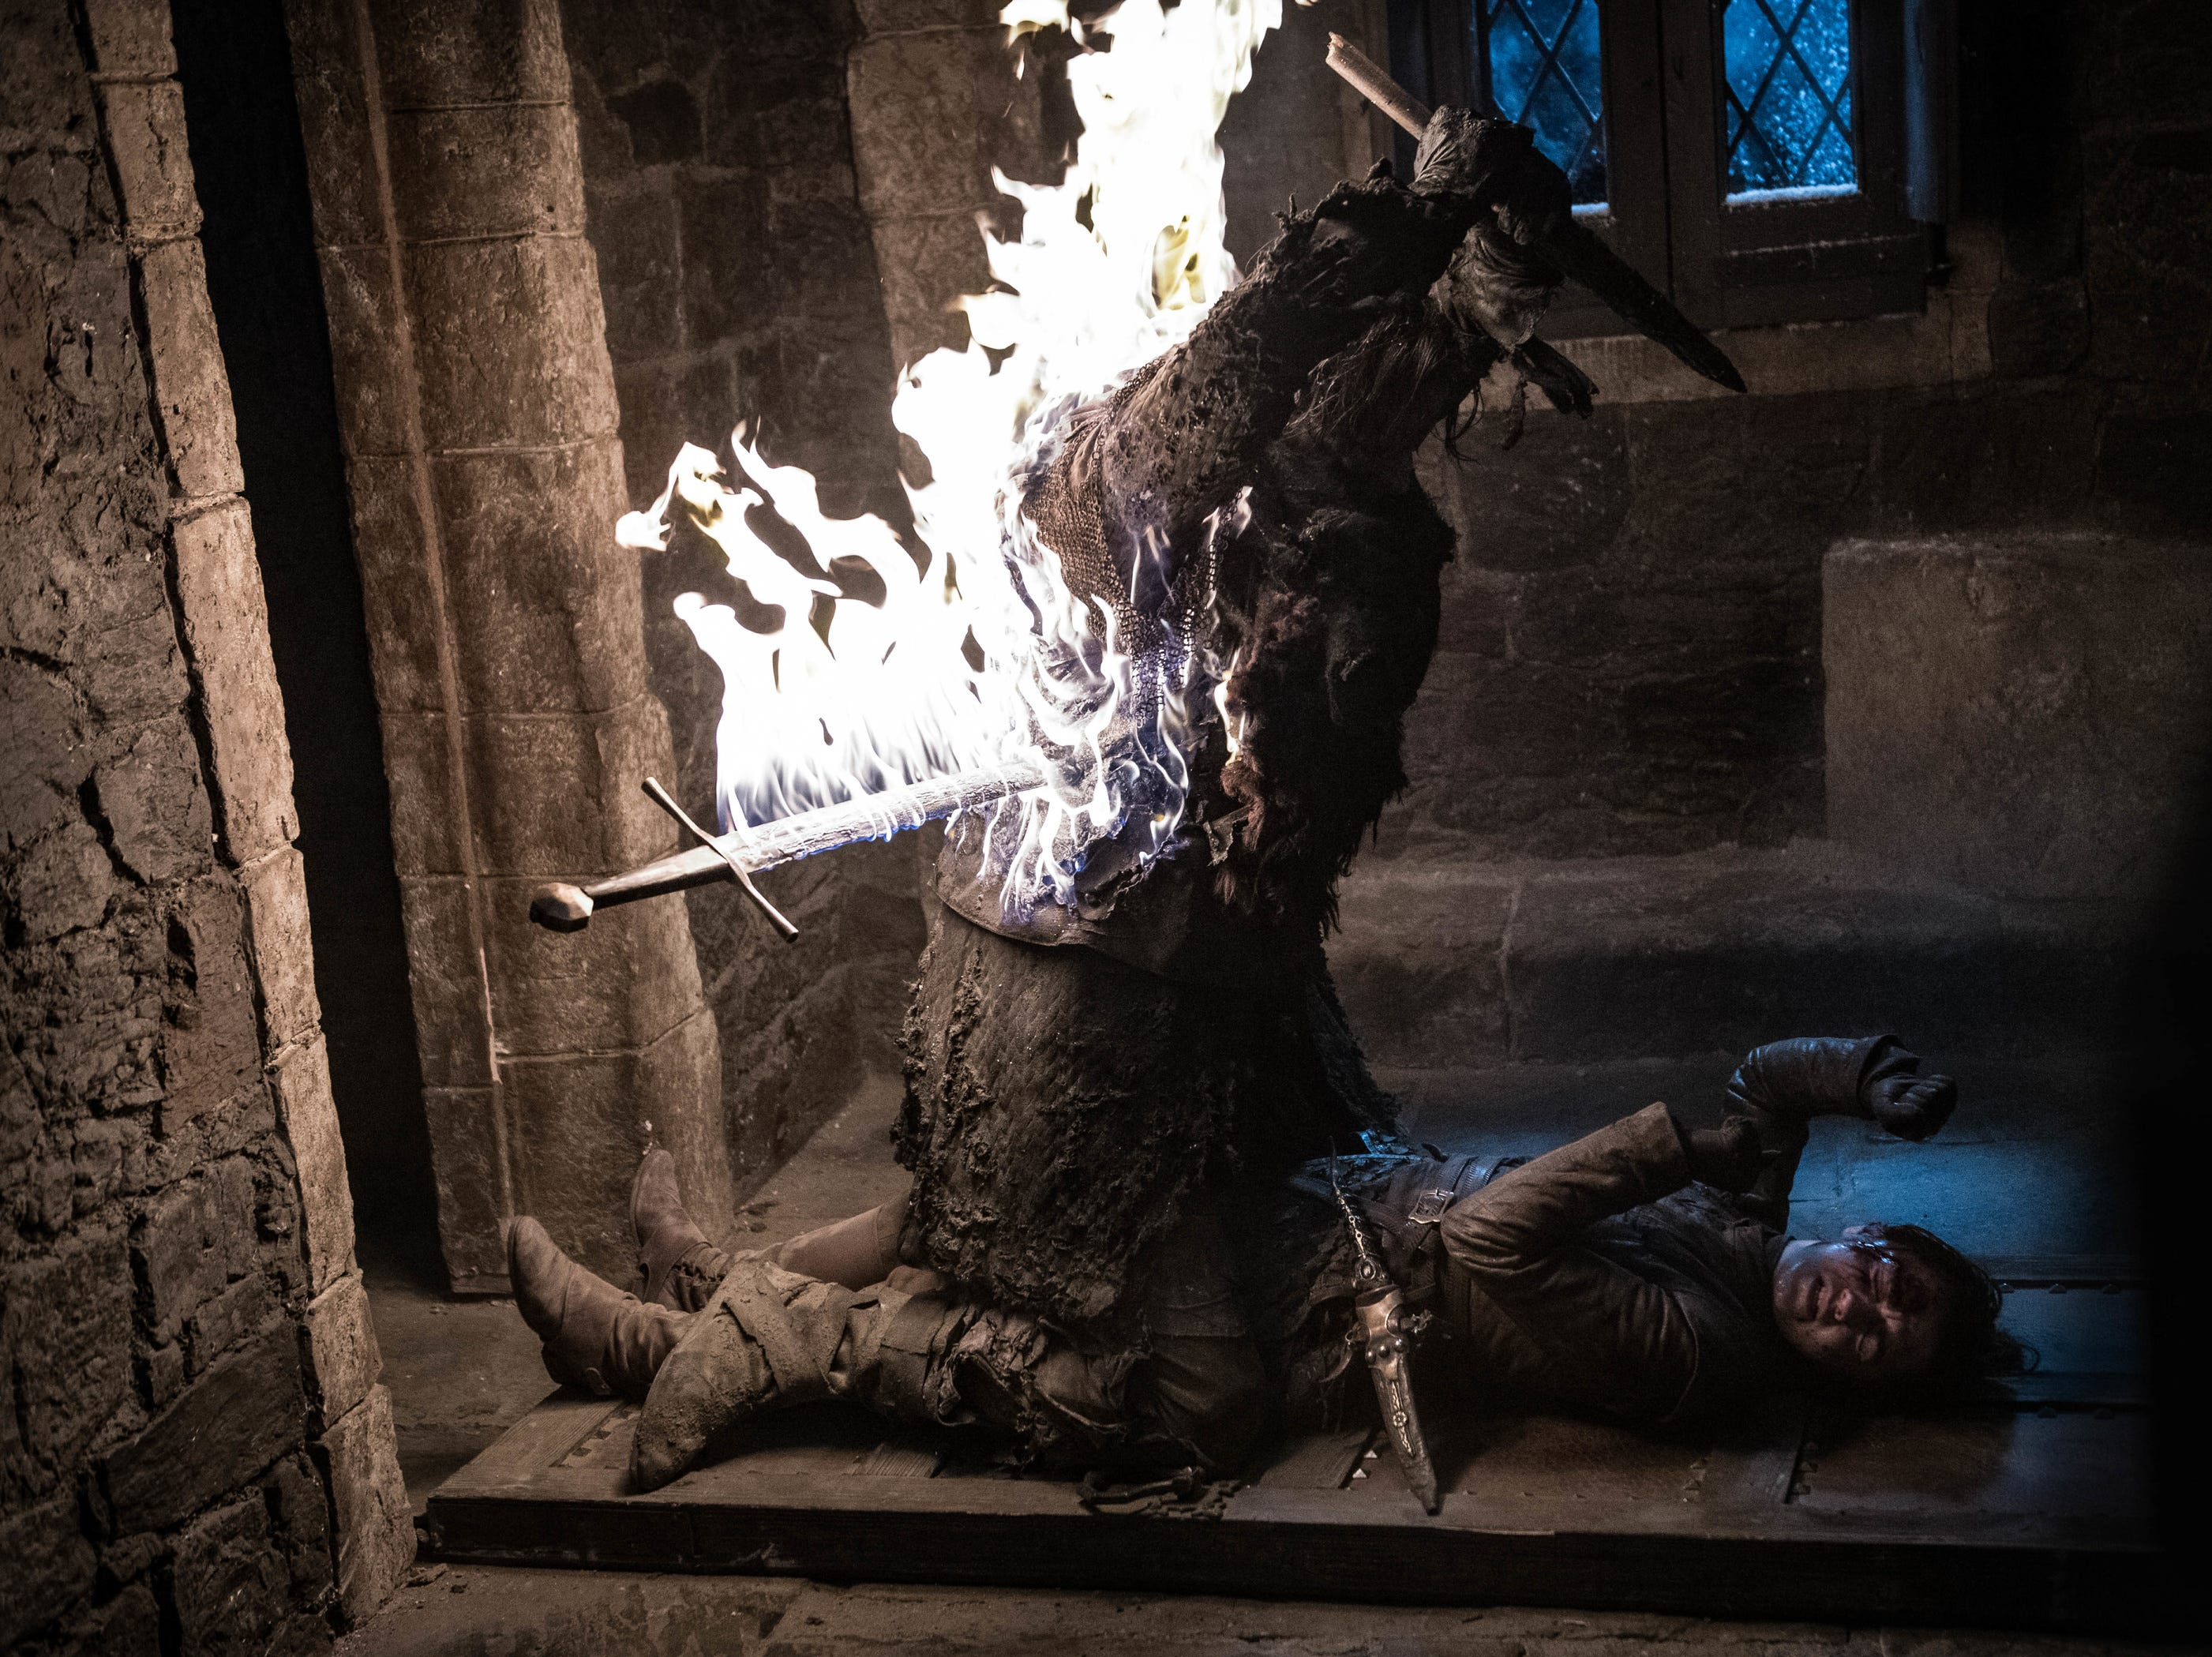 Arya Stark (Maisie Williams), below right, is spared death thanks to the fiery sword of Beric Dondarrion.